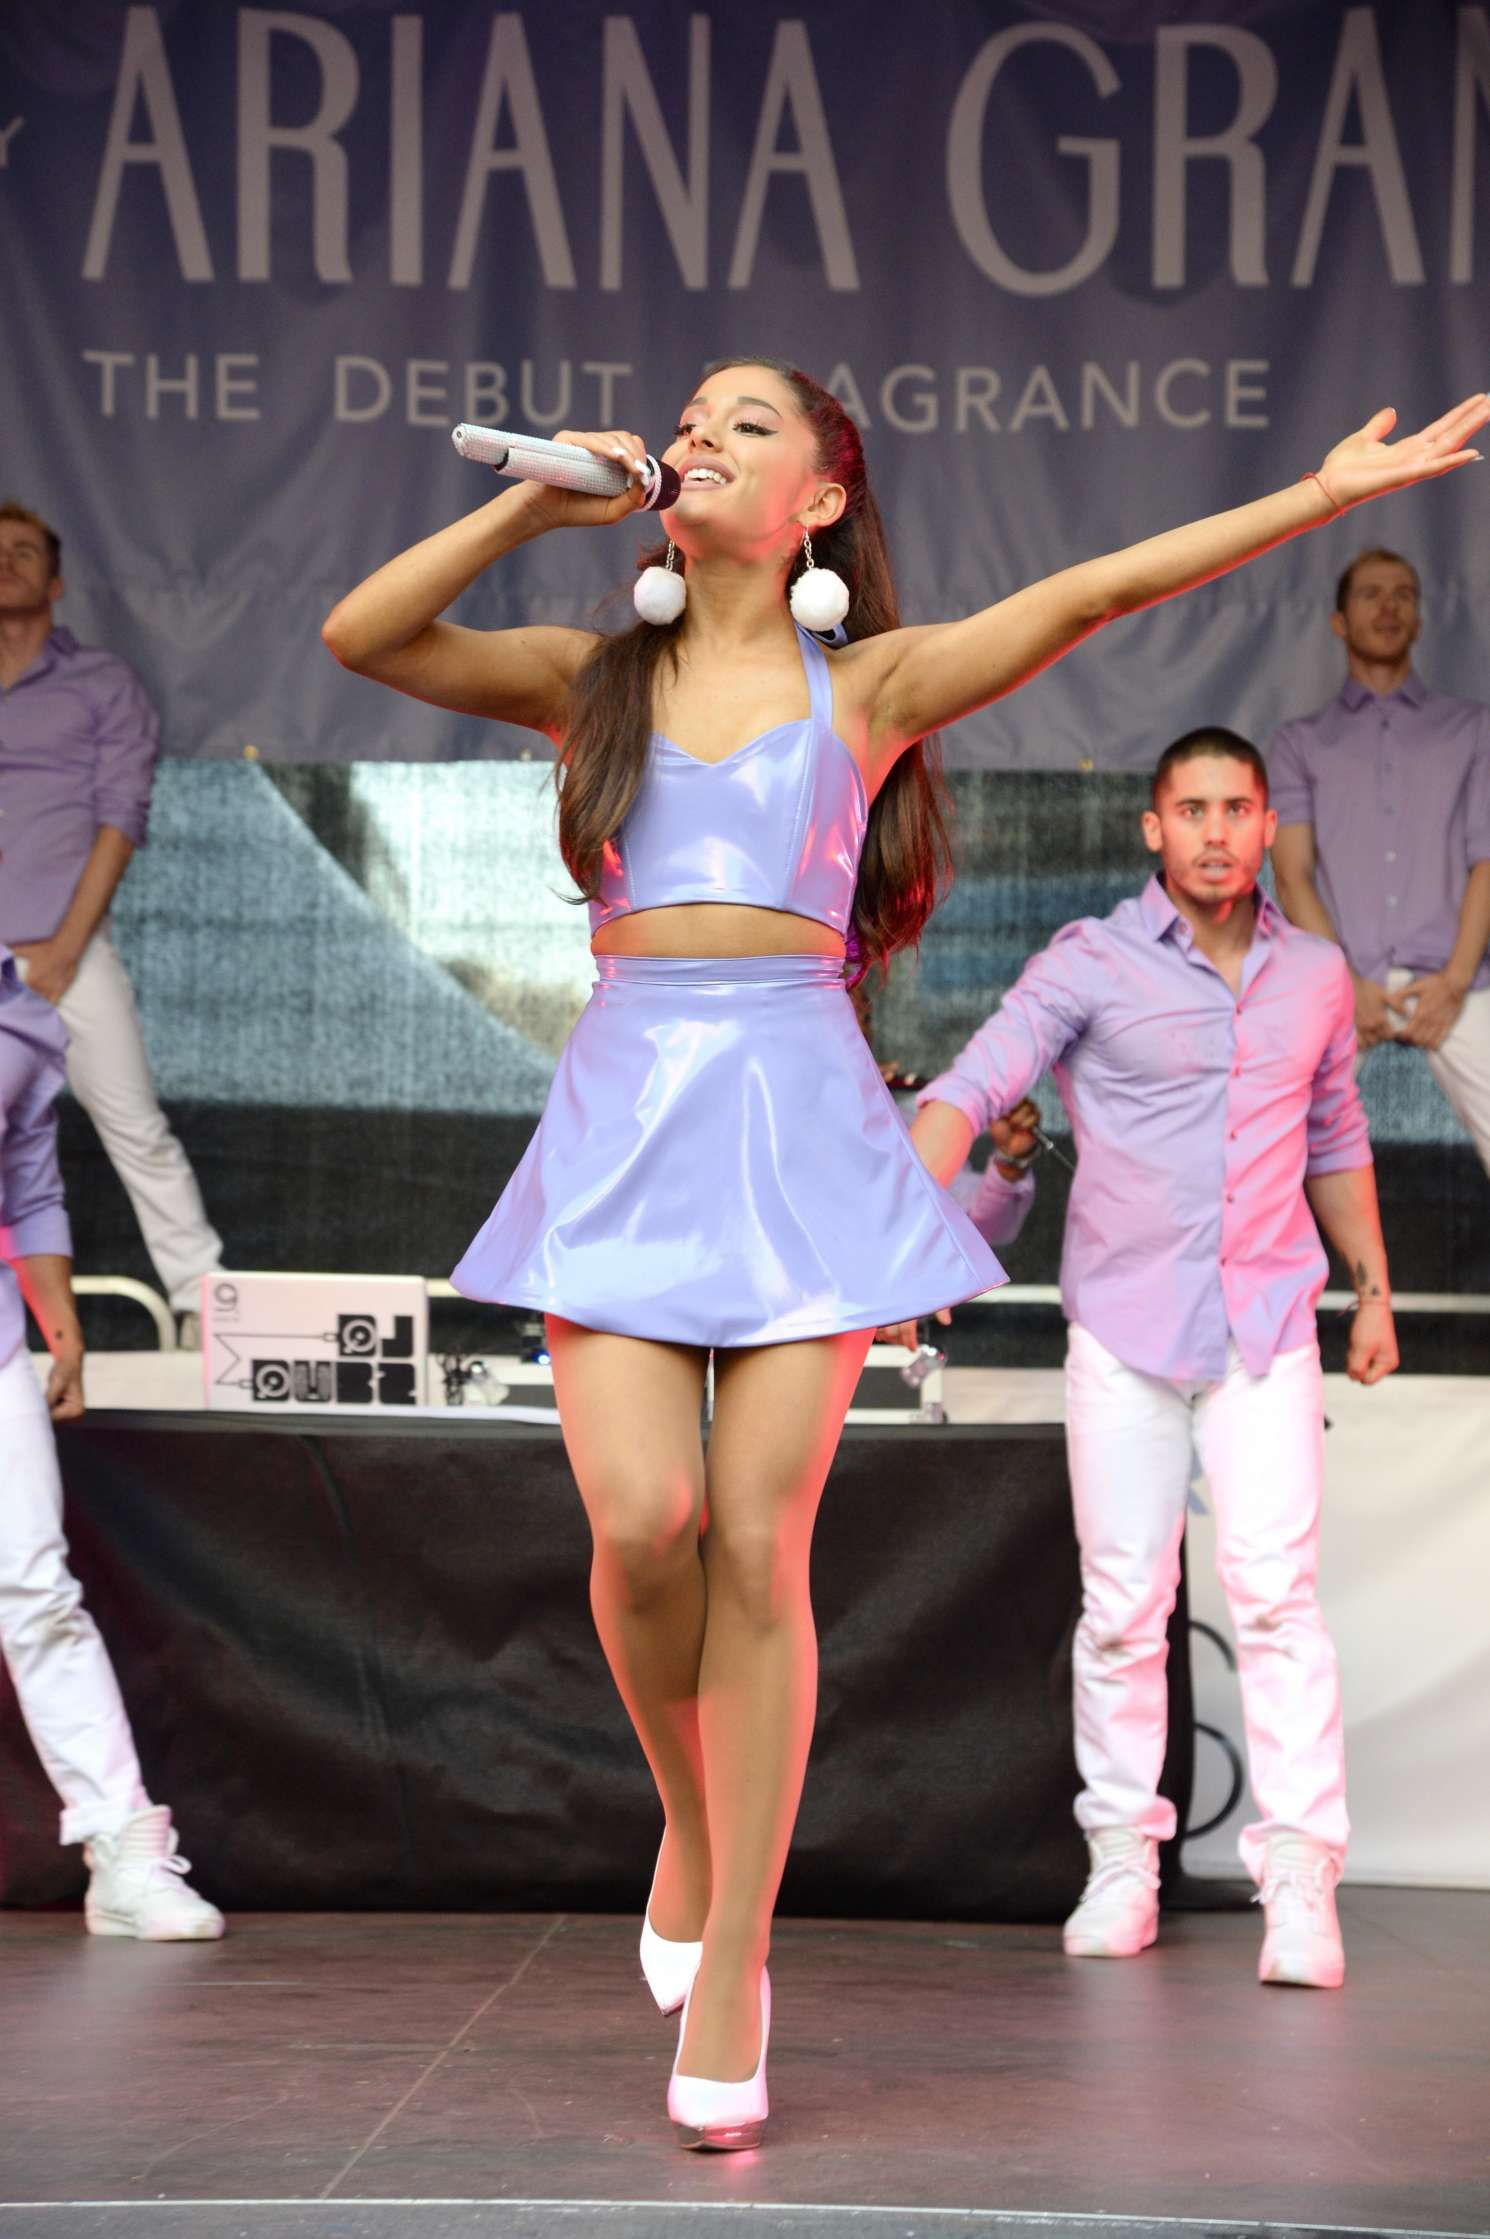 Ariana Grande – Performing at 'Ari' Fragrance Launch and Concert in NYC 17 SEP, 2015